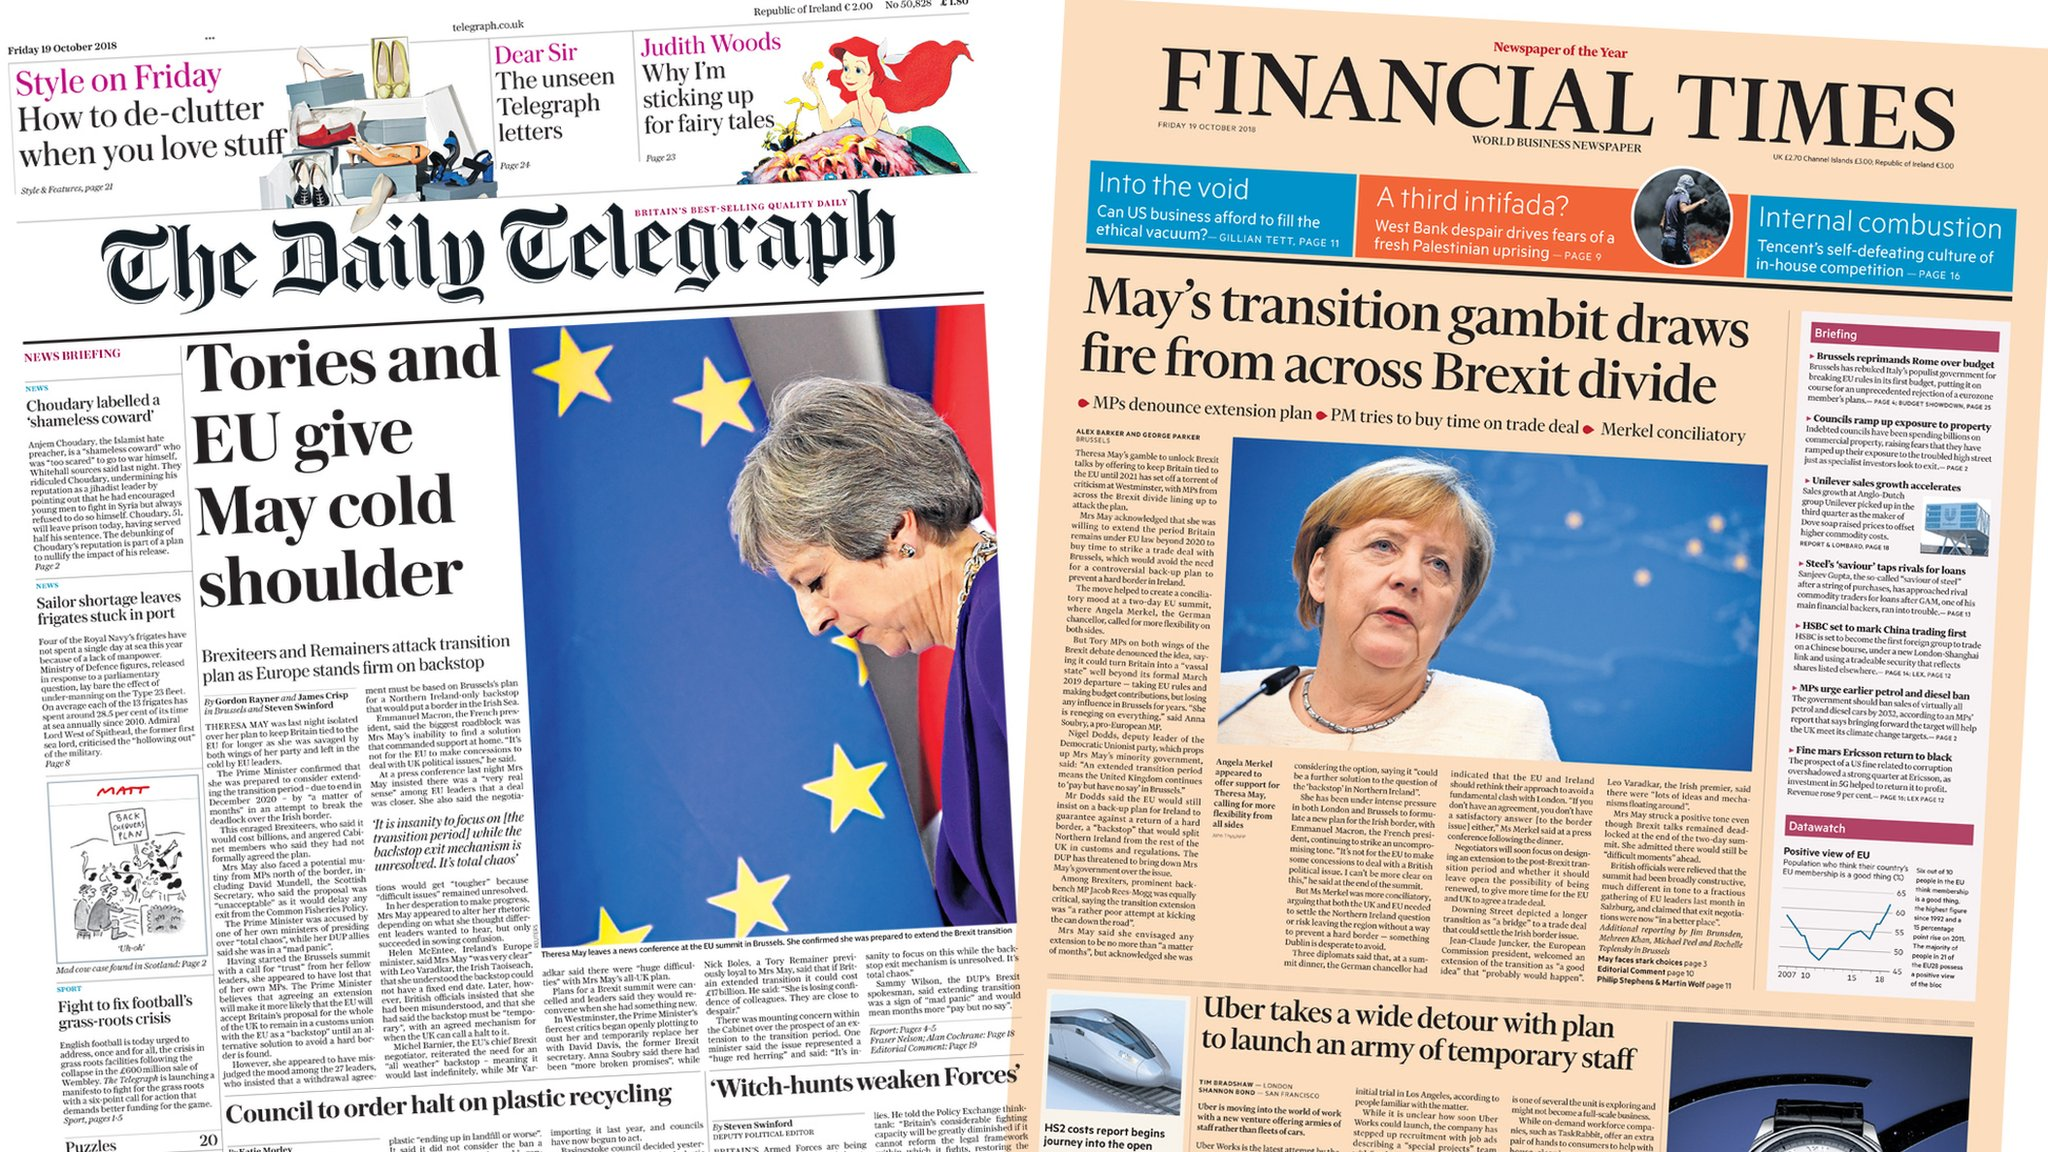 The Papers: Cold shoulder for May's transition gambit